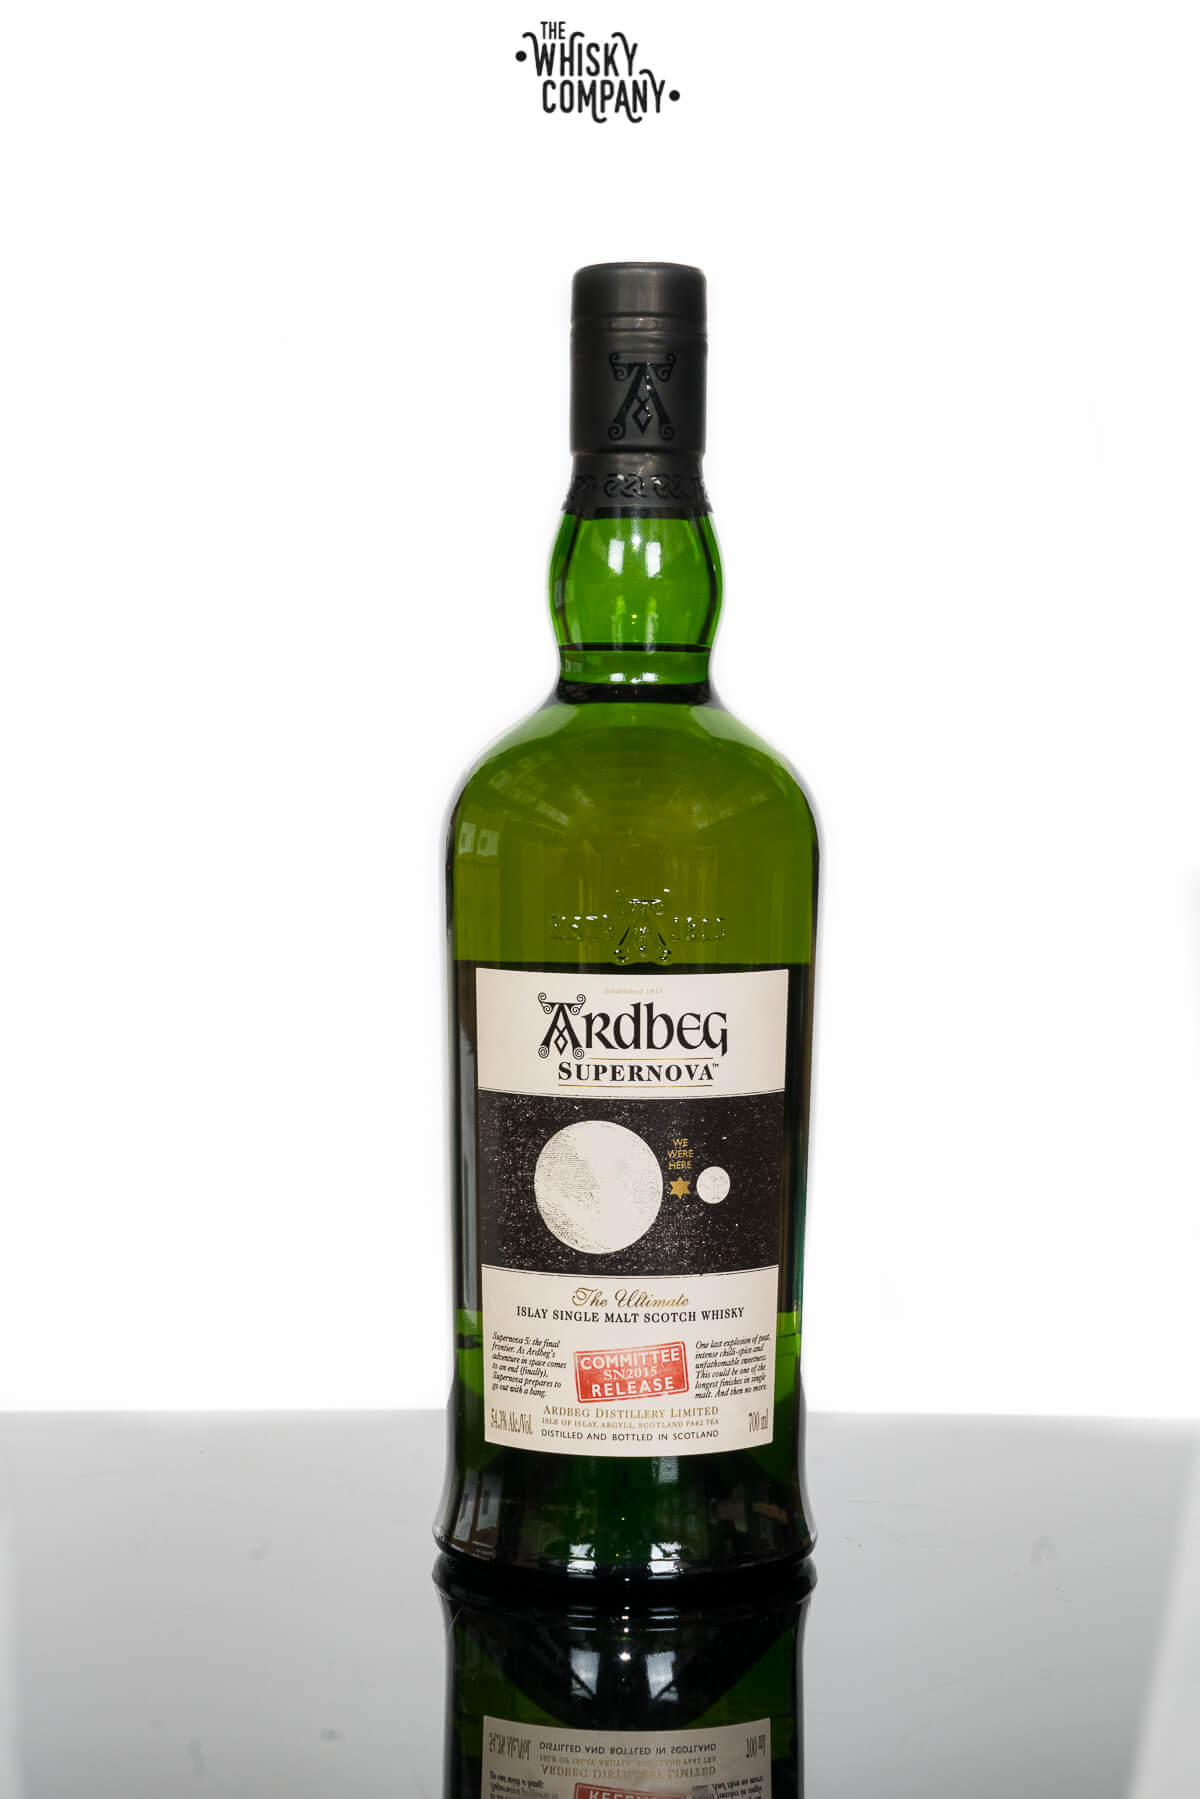 Ardbeg Supernova SN2015 Committee Release Single Malt Scotch Whisky (700ml)